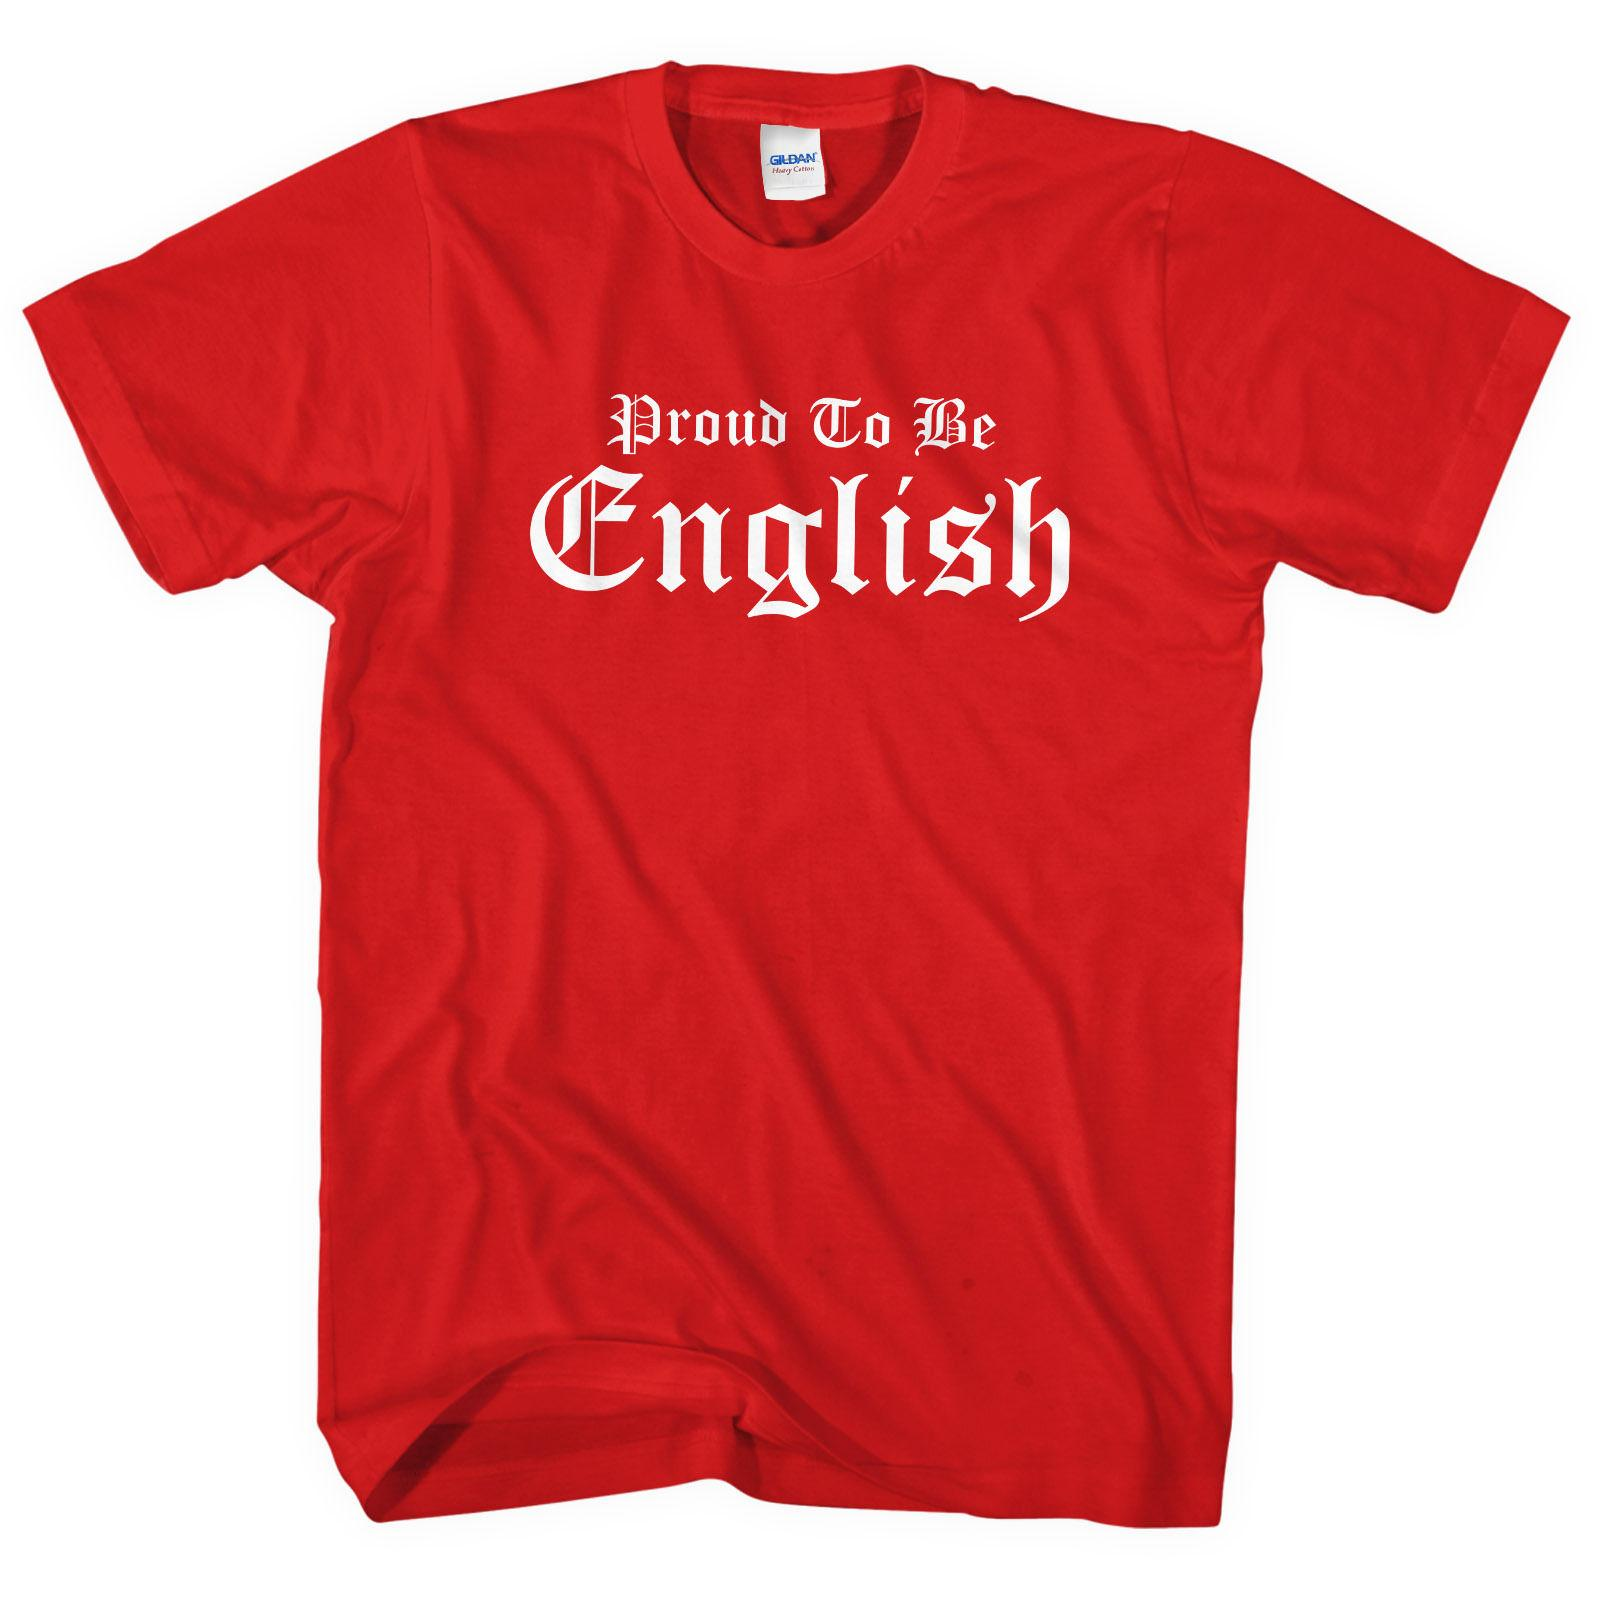 629f2f36 Proud To Be English T Shirt Tee Men Women Kids St Georges Day Party England  L37 Cool Casual Pride T Shirt Men Unisex New Fashion T Shirt Shirts Shirts  And ...